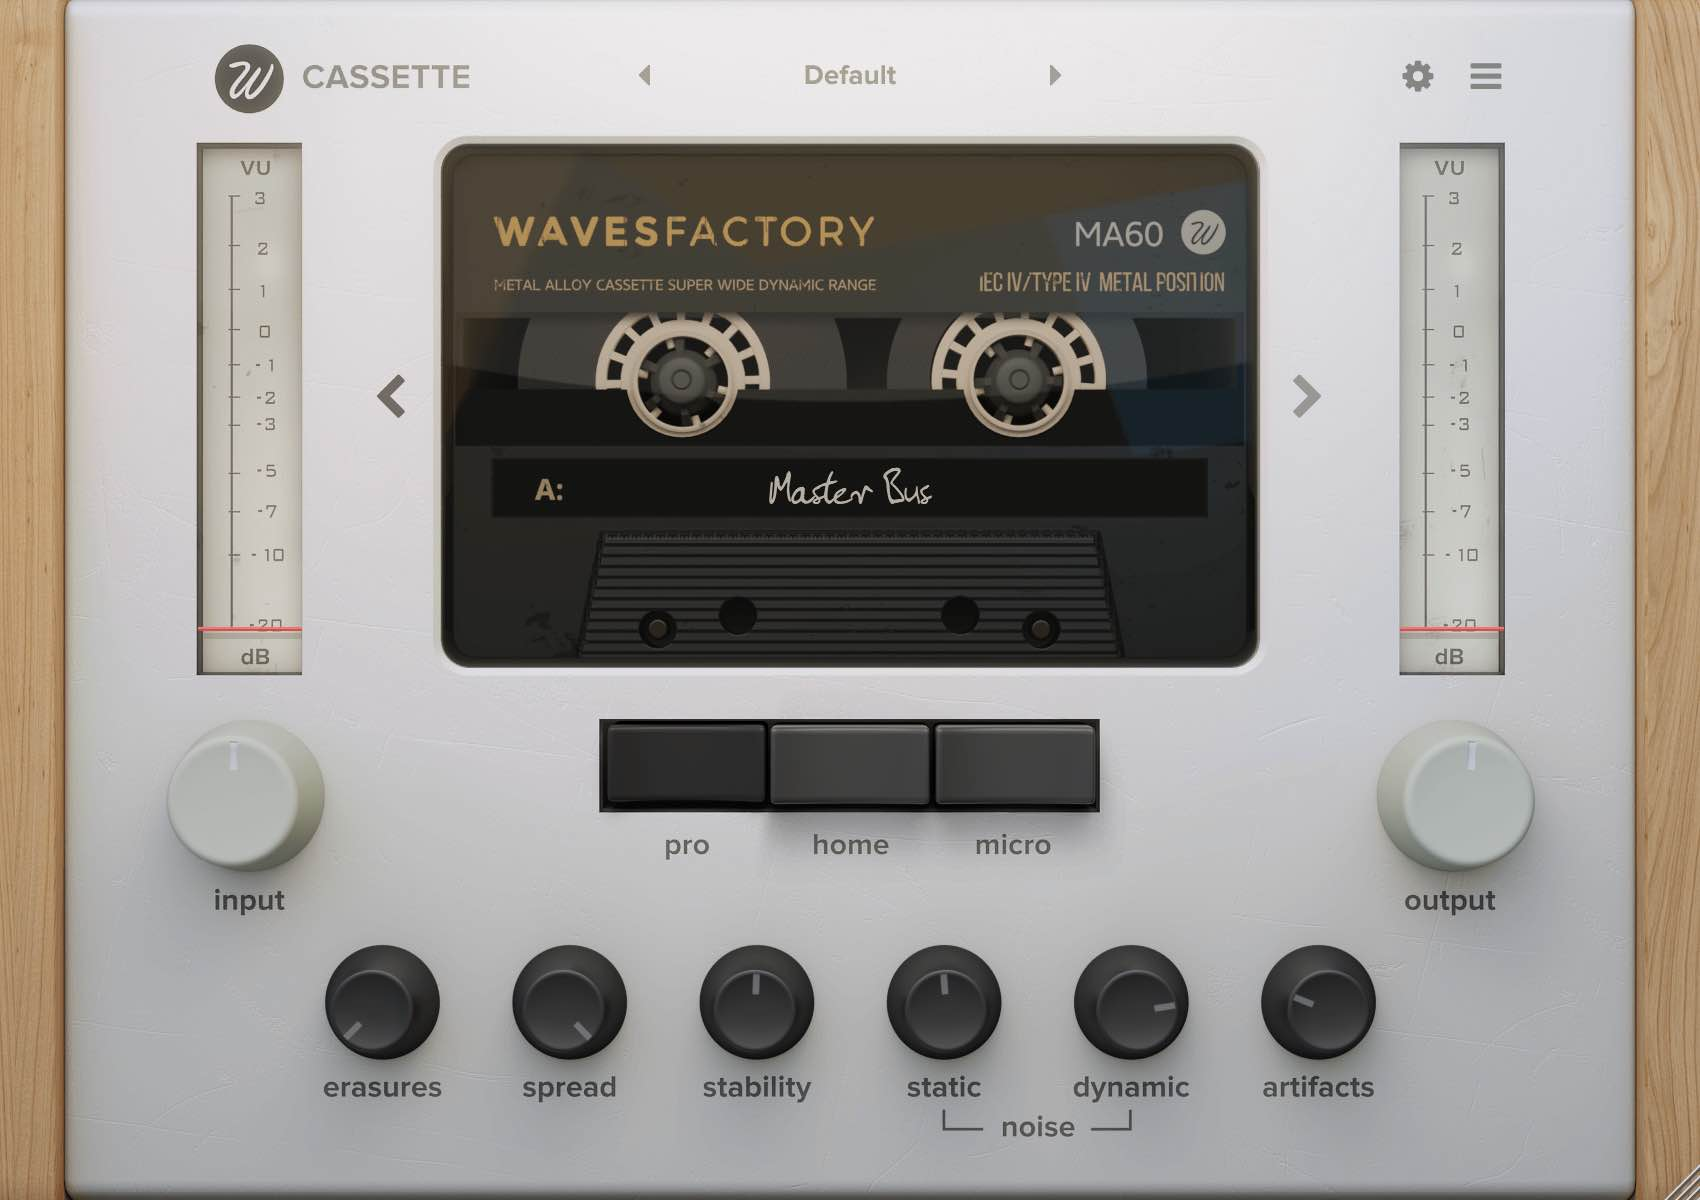 Wavesfactory Cassette TypeIV plug-in audio lofi audio pro mix audiofader virtual